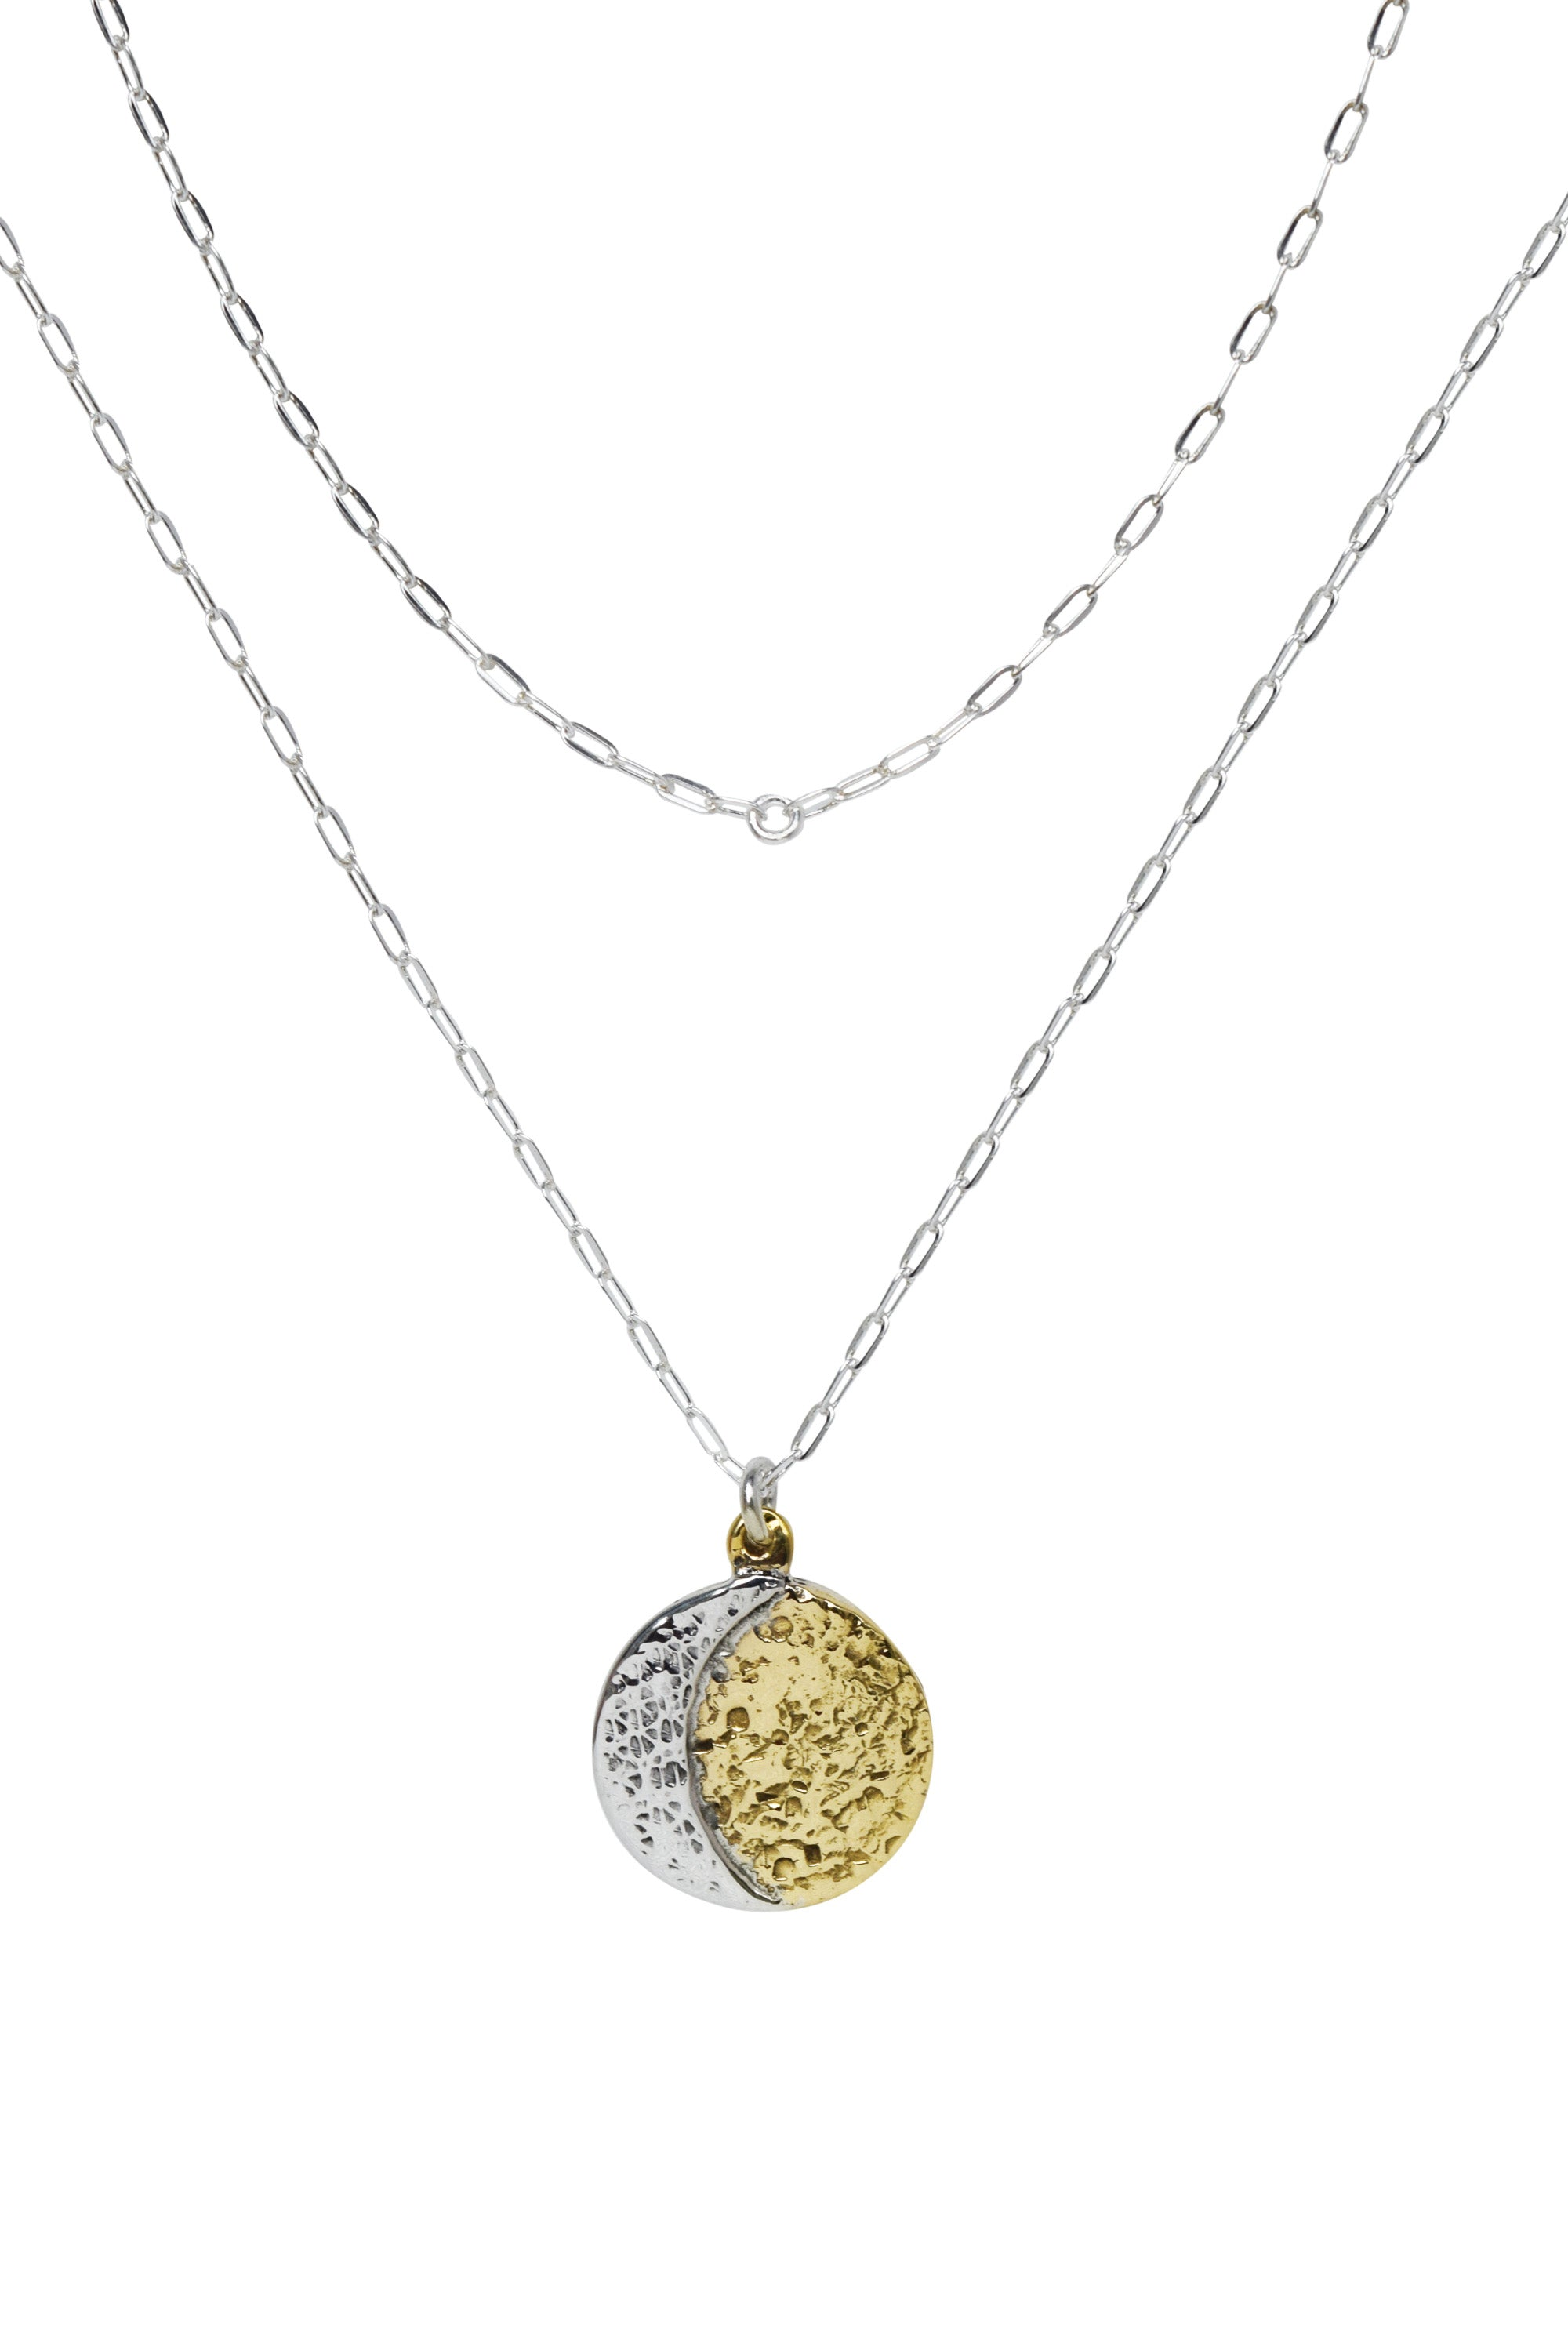 Mooncoin Reversible Mixed Metal Necklace - Lissa Bowie